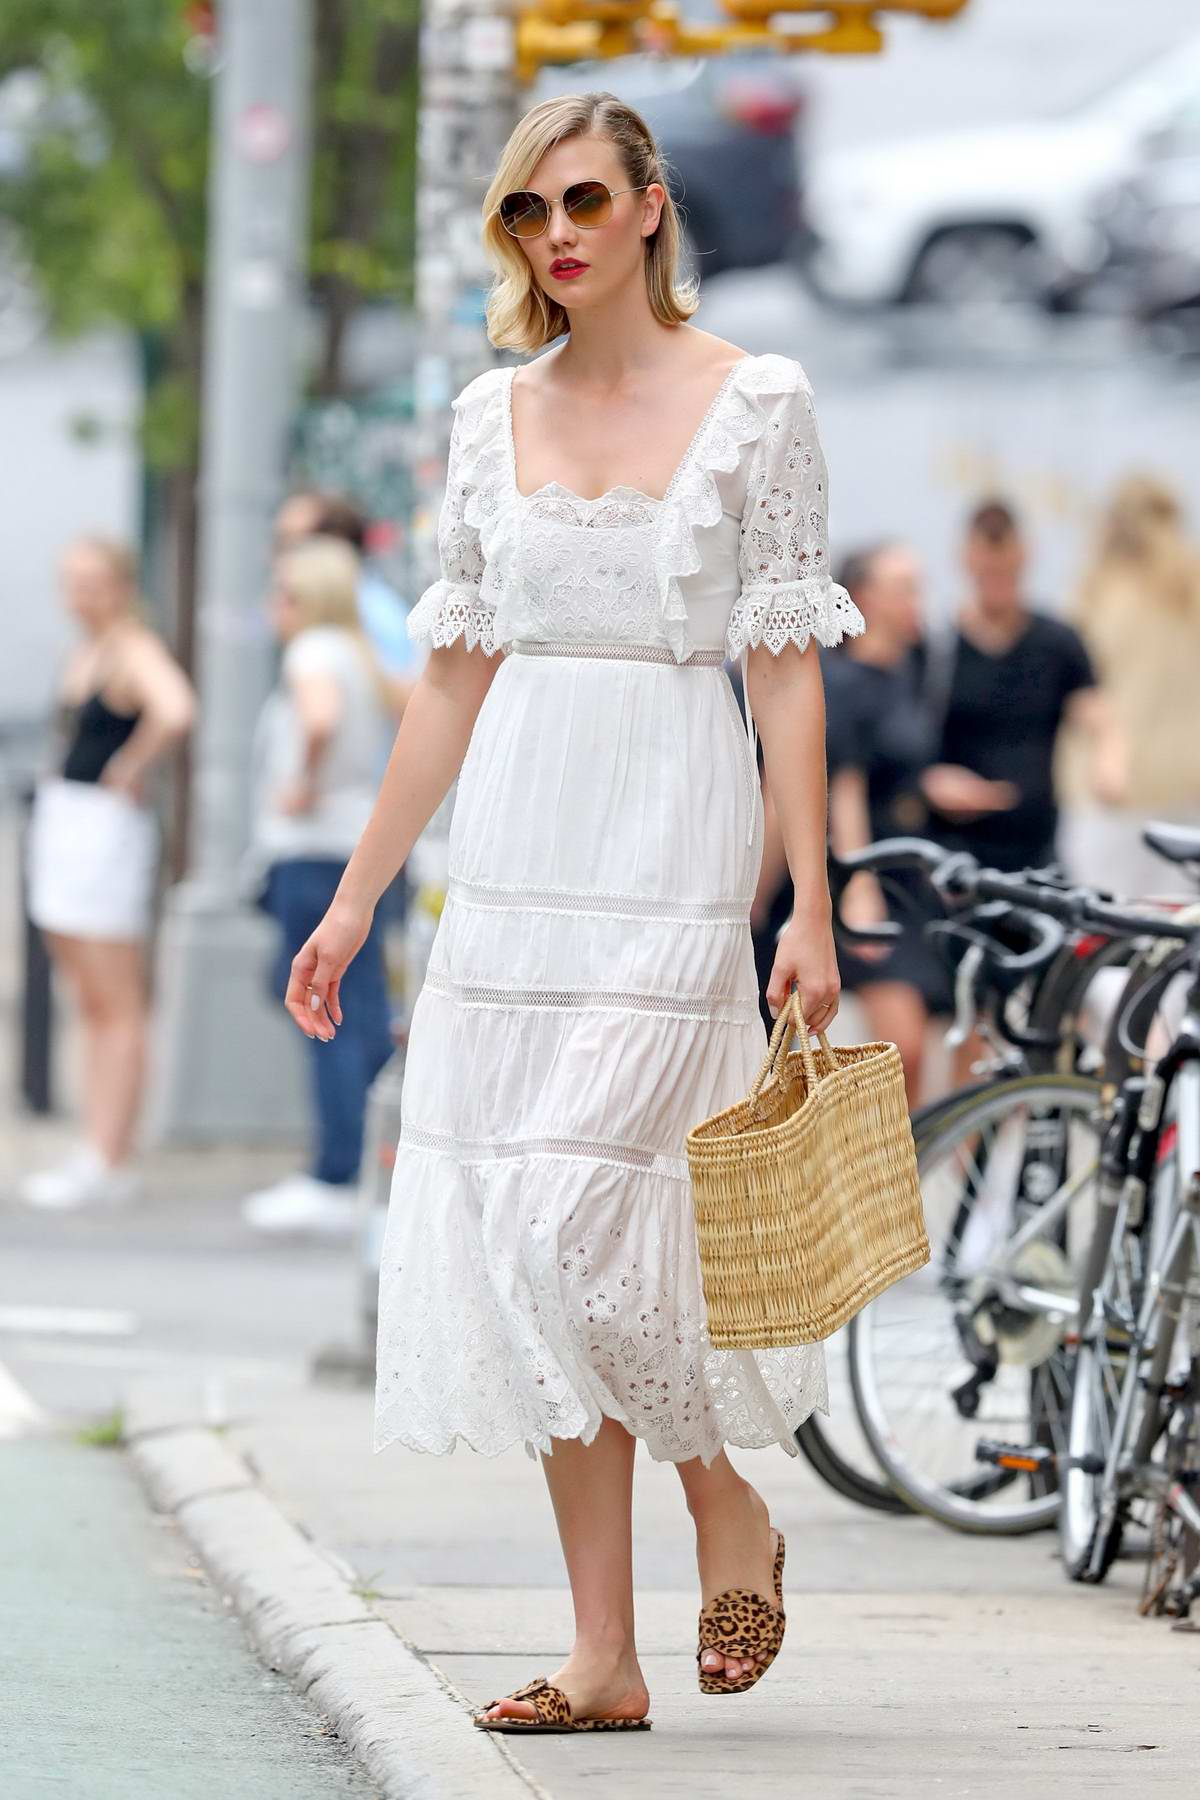 Karlie Kloss looks stunning in a 'Self Portrait' white summer lace dress while out in New York City